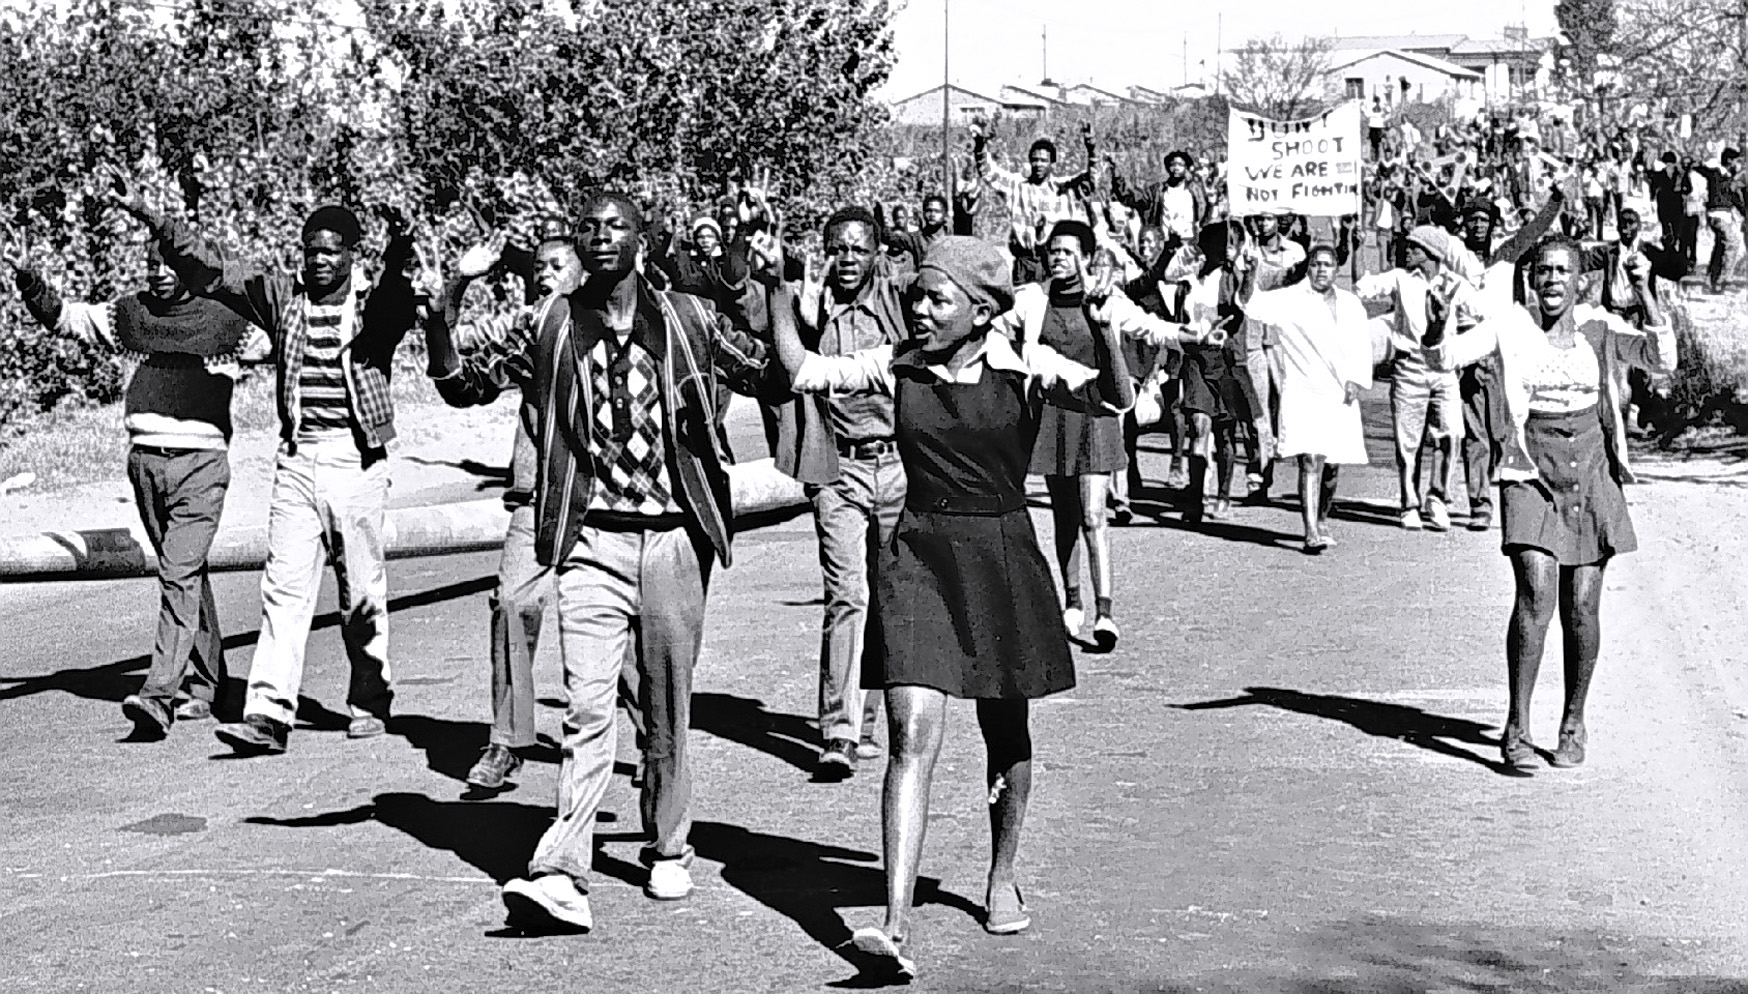 High-school students in Soweto, South Africa, protesting for better education, 1976. (Credit: Bongani Mnguni/City Press/Gallo Images/Getty Images)